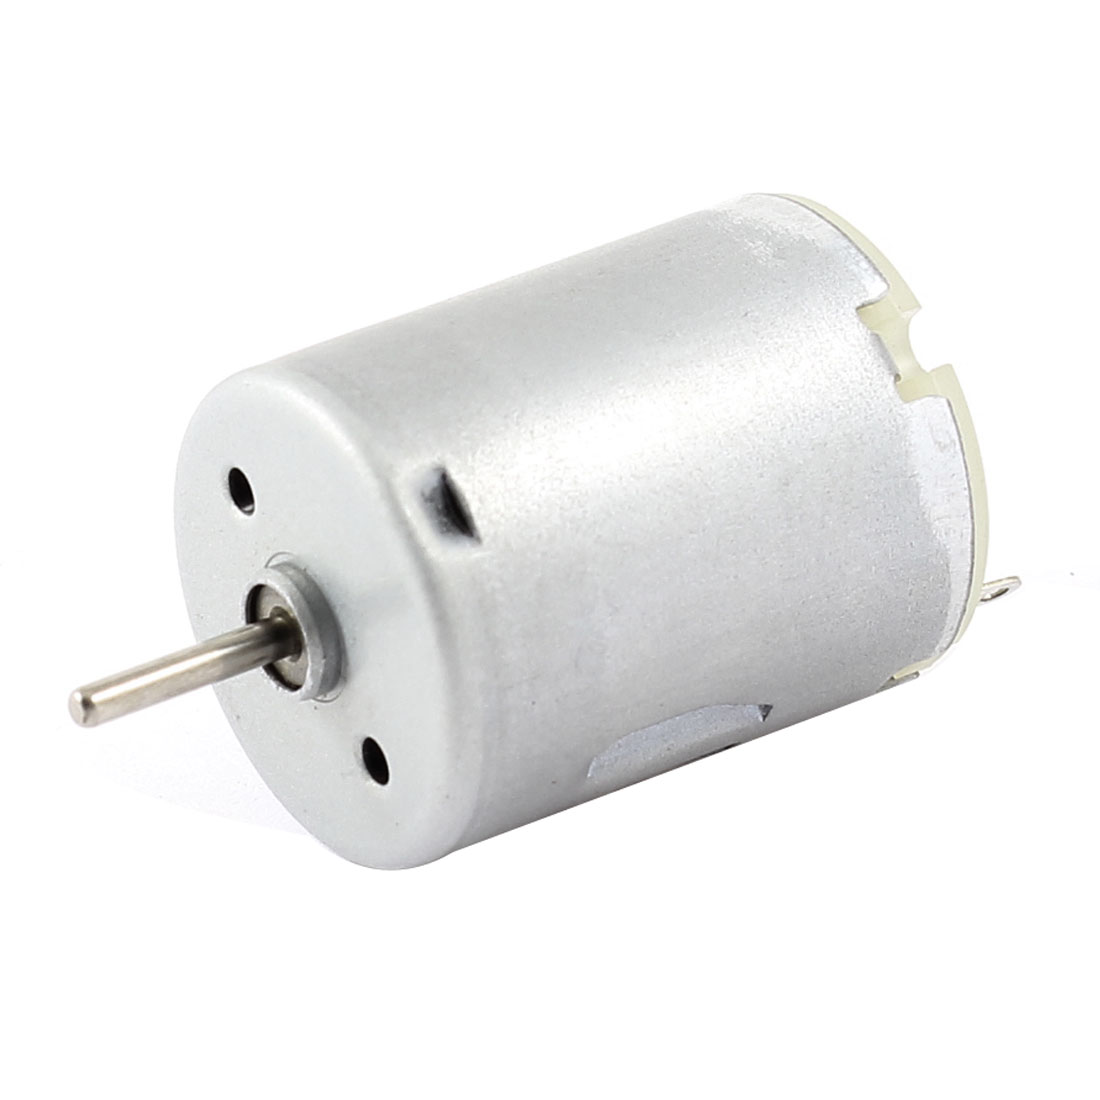 6V 1800 RPM 2mm Shaft Magnetic Cylinder Electric DC Motor for DIY Toy